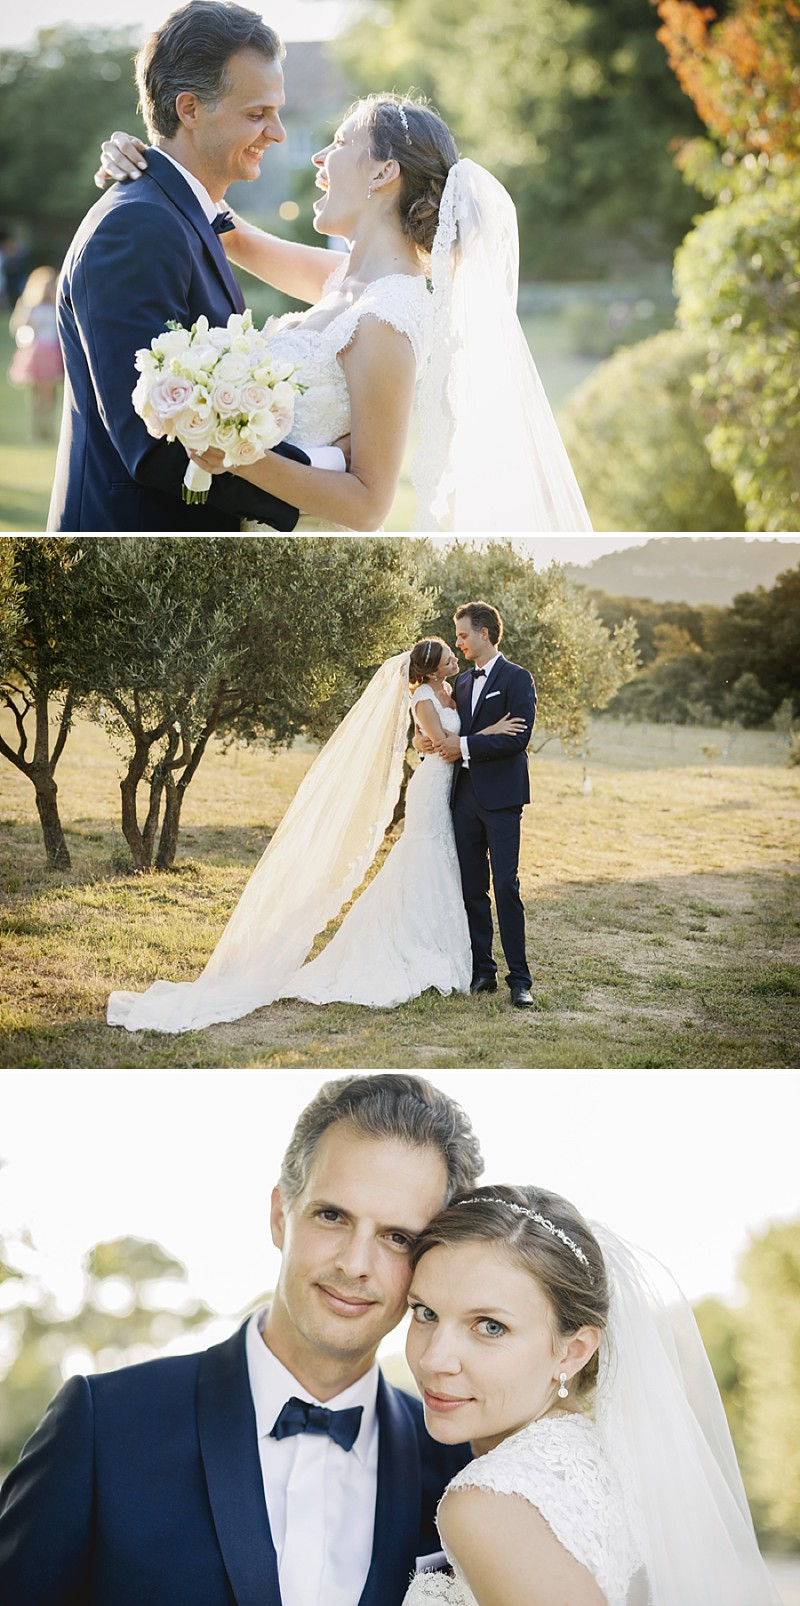 Elegant Wedding At Le Mas De La Rose Provence With Bride In Lace Fishtail Gown By Pronovias And Groom In Navy Armani Tuxedo With Images From Jo Hastings Wedding Photography 0013 La Sophistication Et Simplicité En Provence.